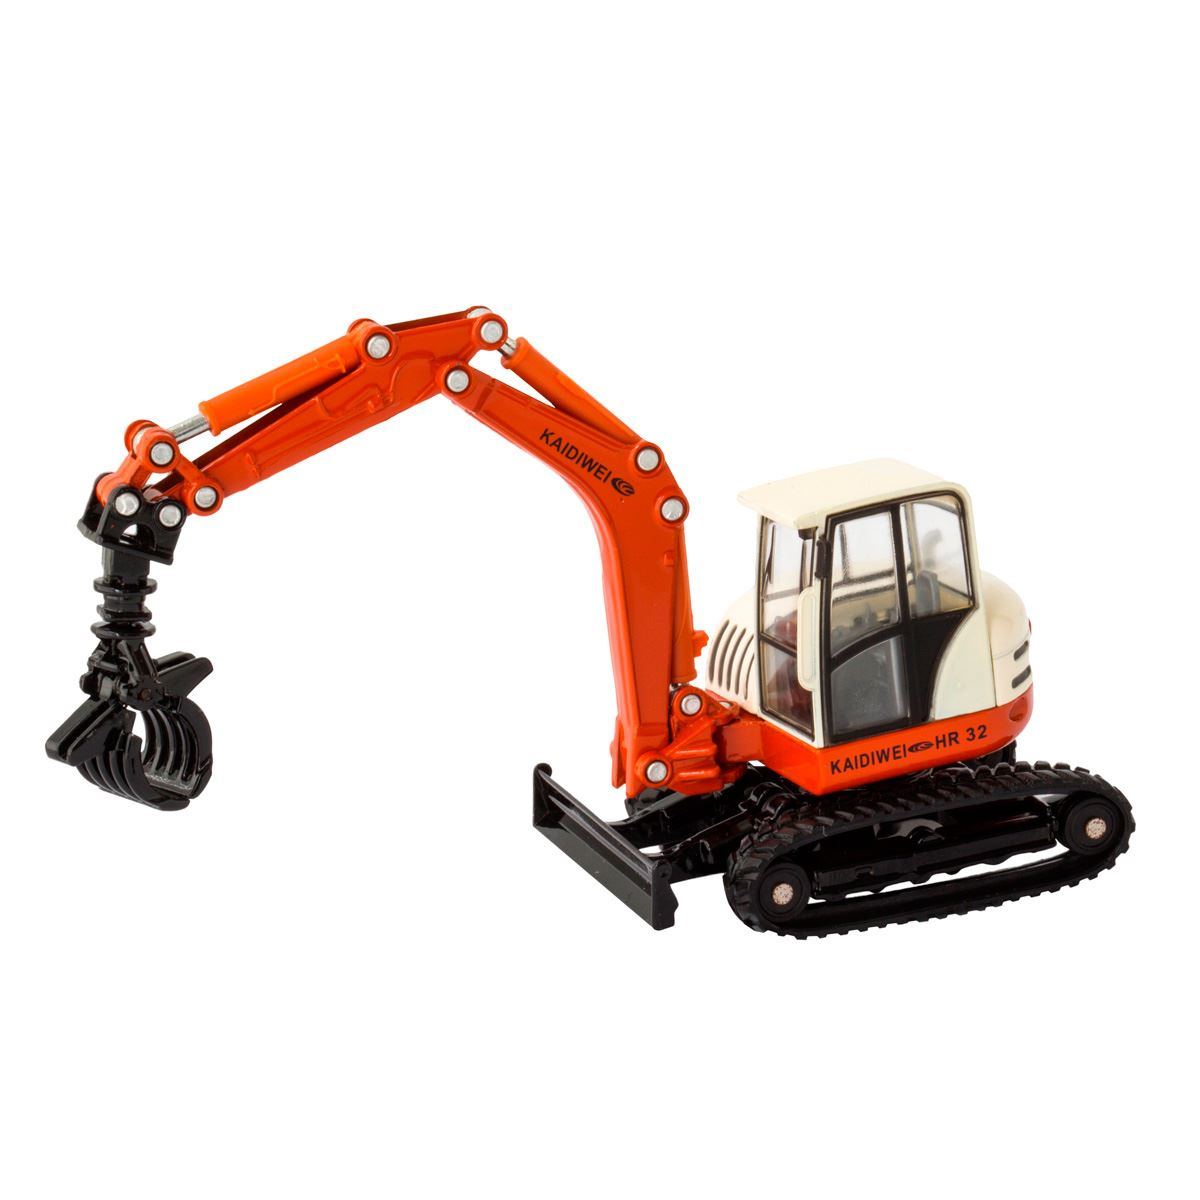 Clamshell Excavator 1:50